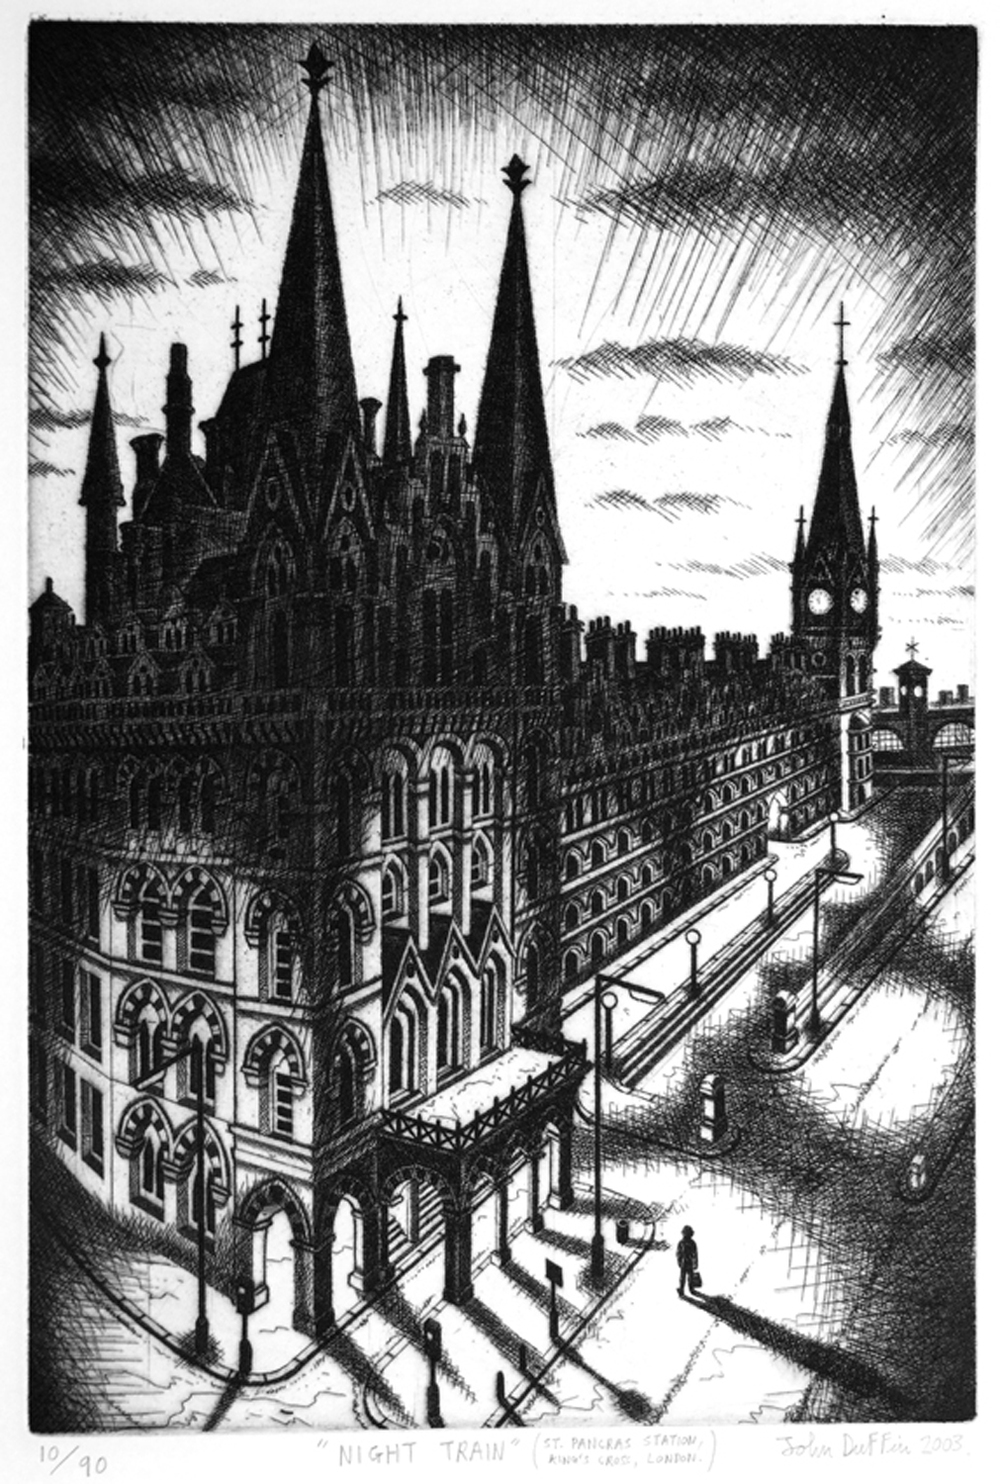 Night Train (St Pancras Station, Kings Cross, London) etching 25 x 37 cm £195 (unframed)